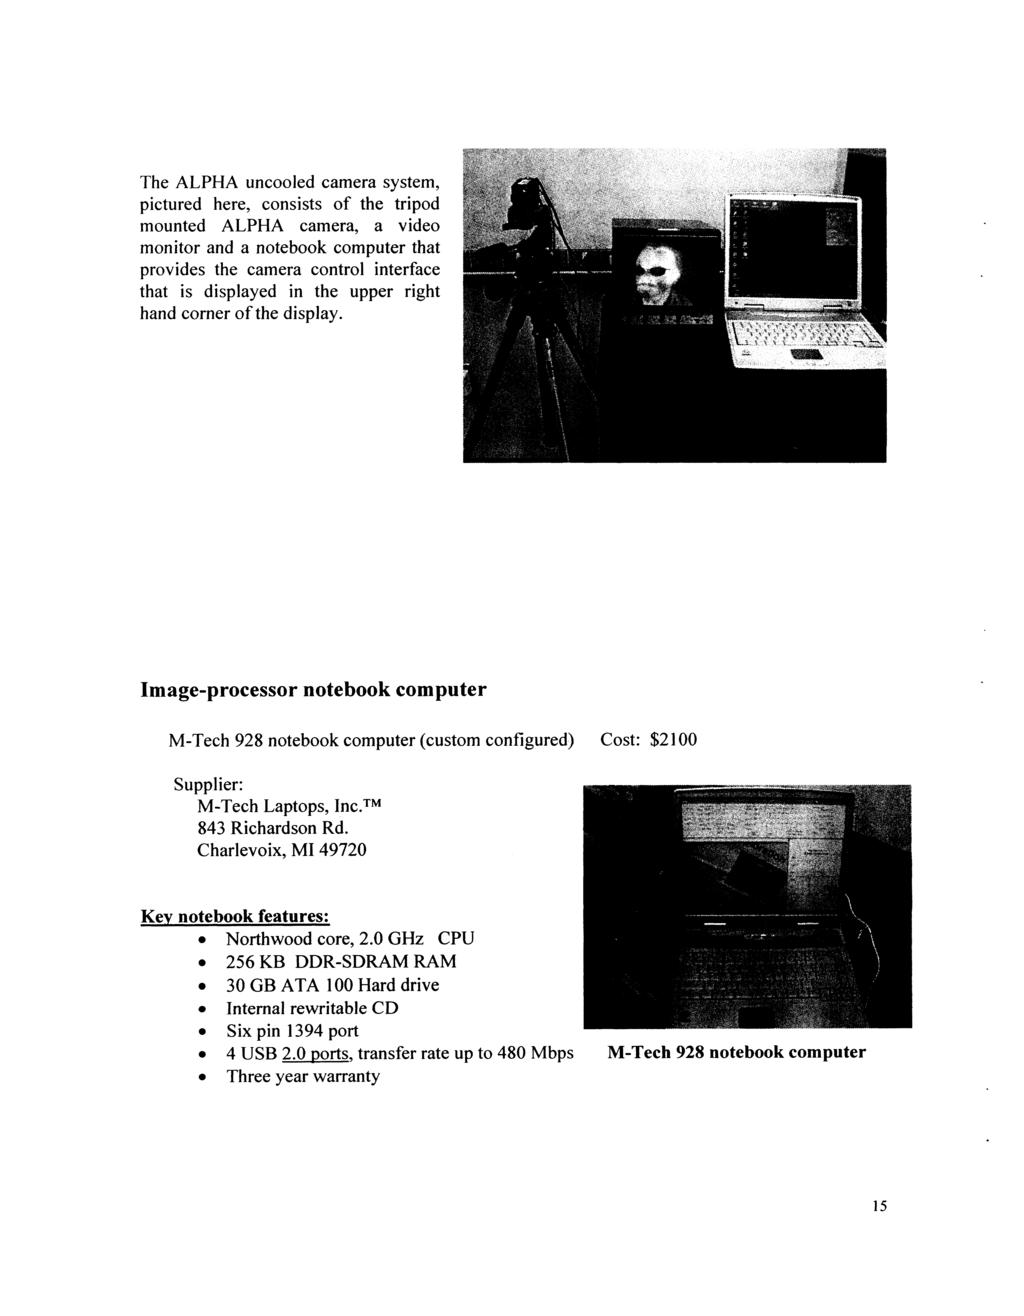 High Performance Cameras For Hyperspectral And Polarimetric Imaging The Figure Below Shows Pir325 Electricalspecifications Layout Alpha Uncooled Camera System Pictured Here Consists Of Tripod Mounted